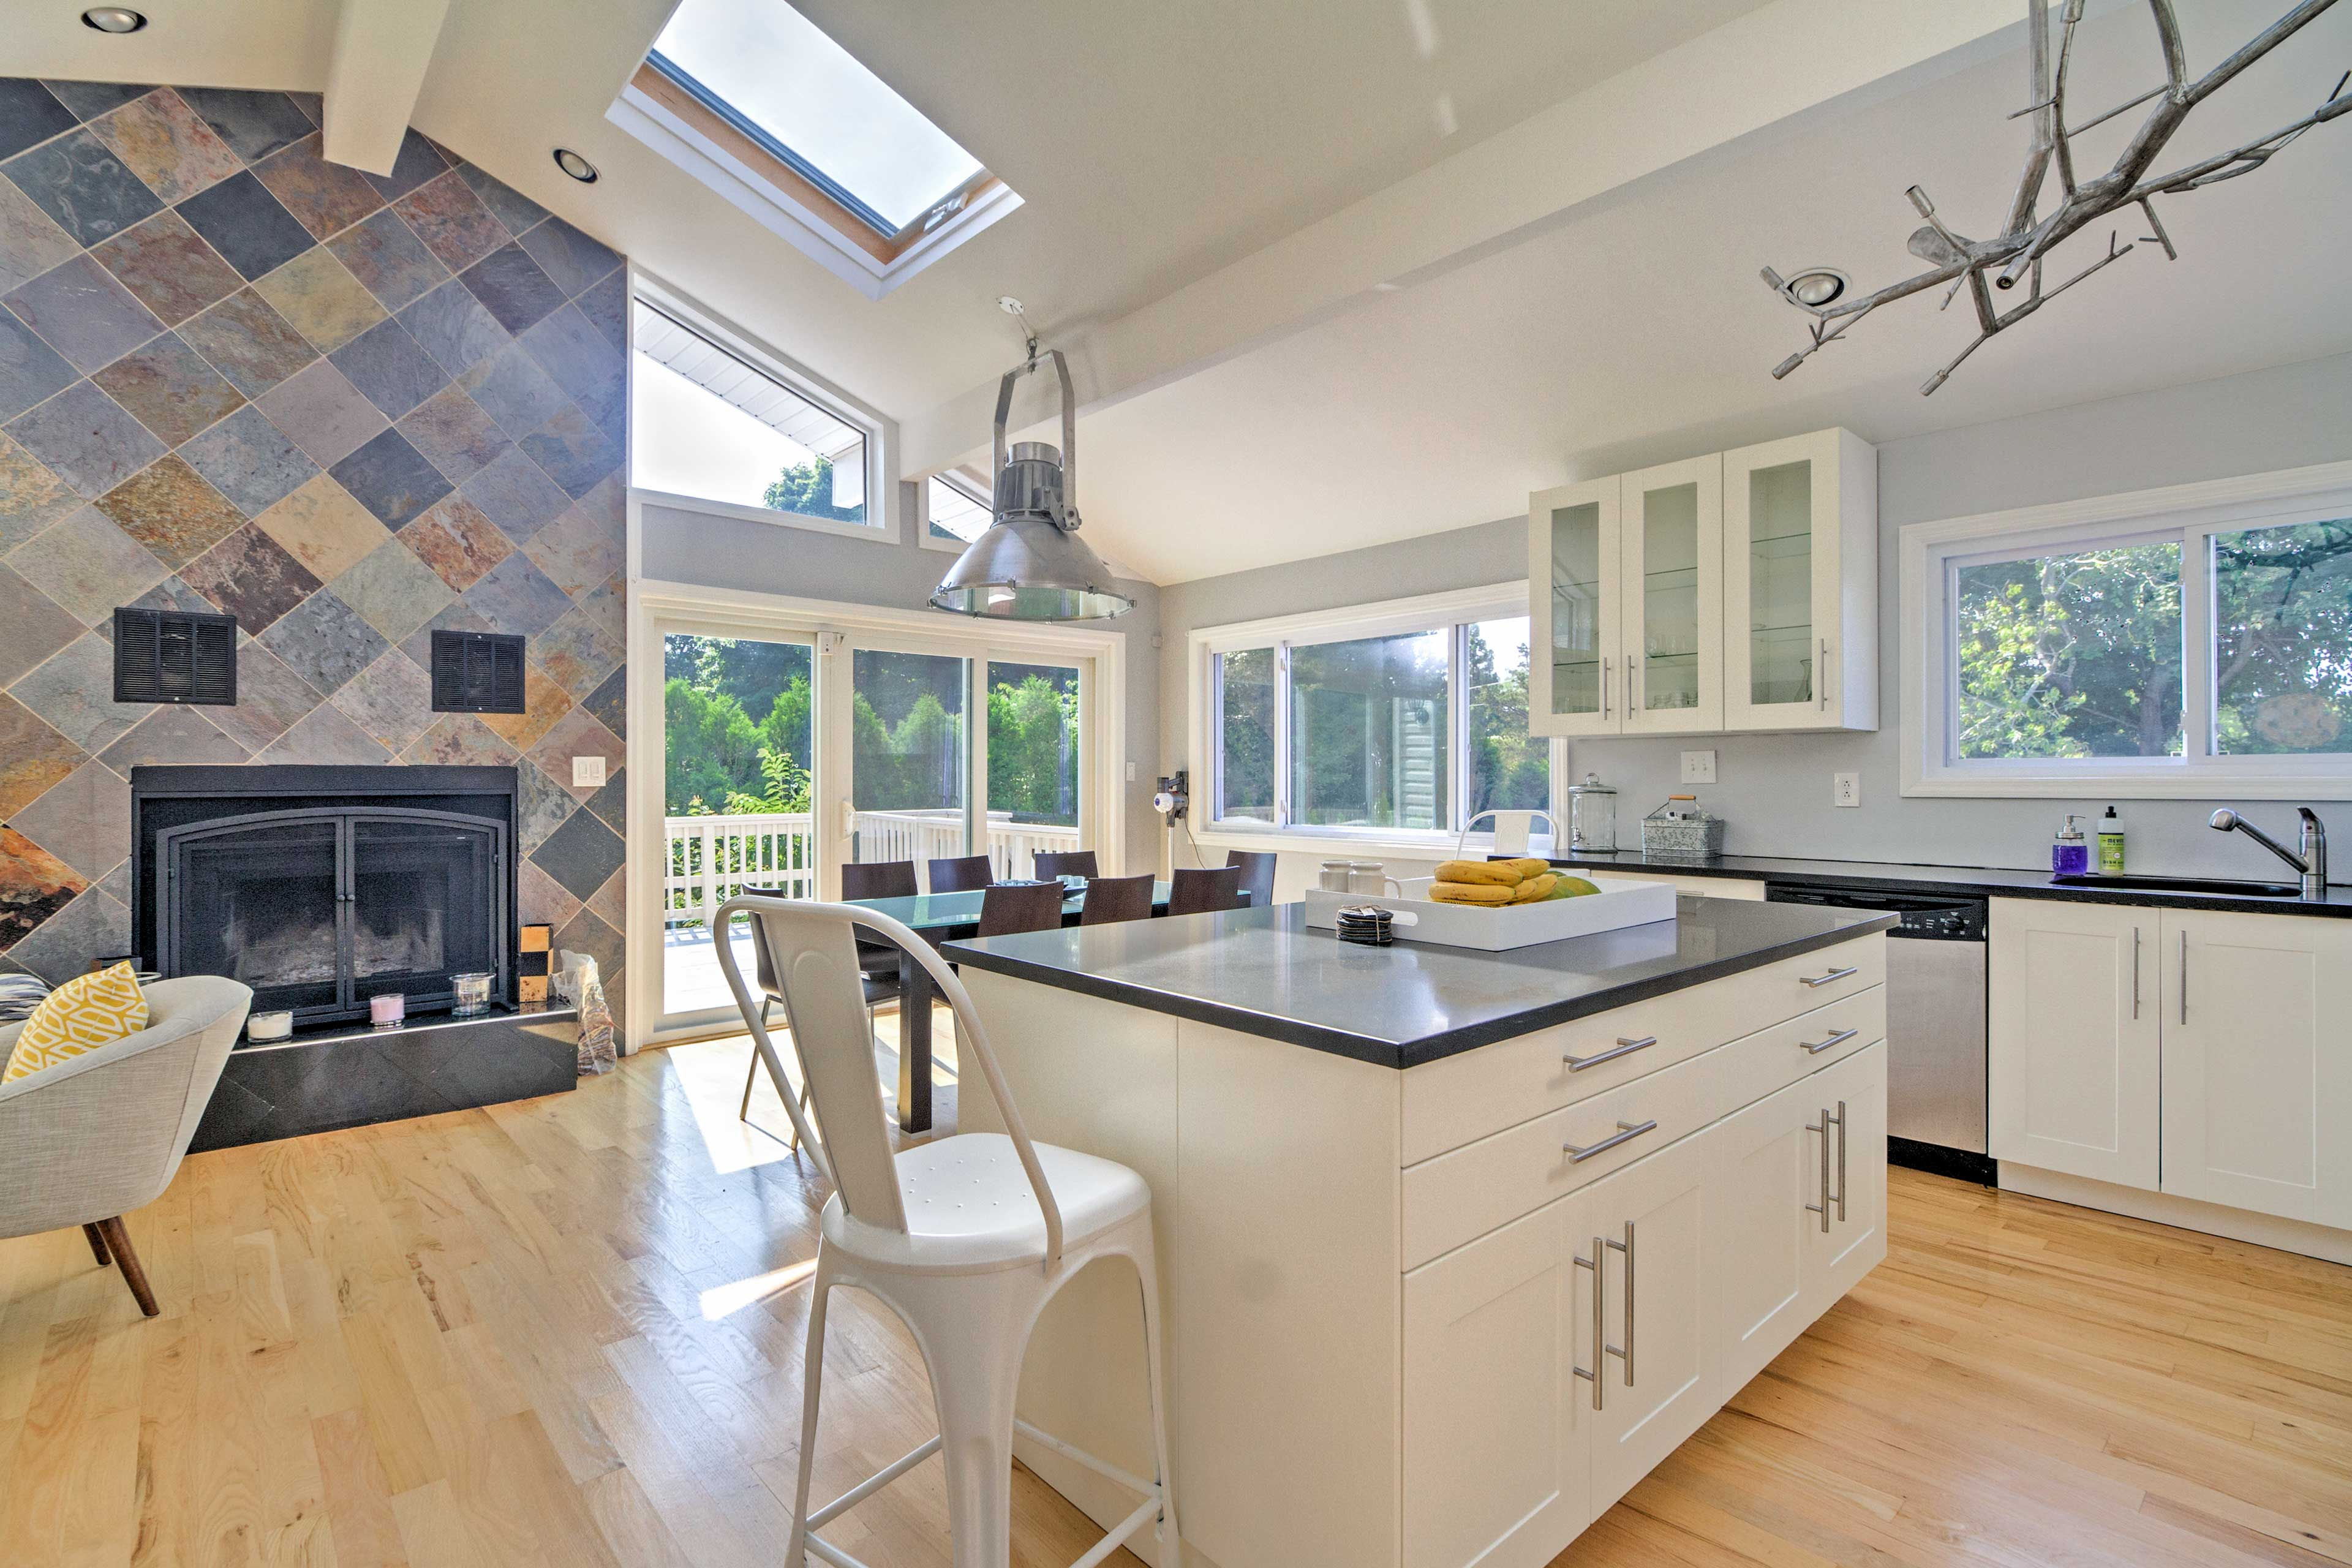 The completely renovated home boasts 2,074 square feet of living space.